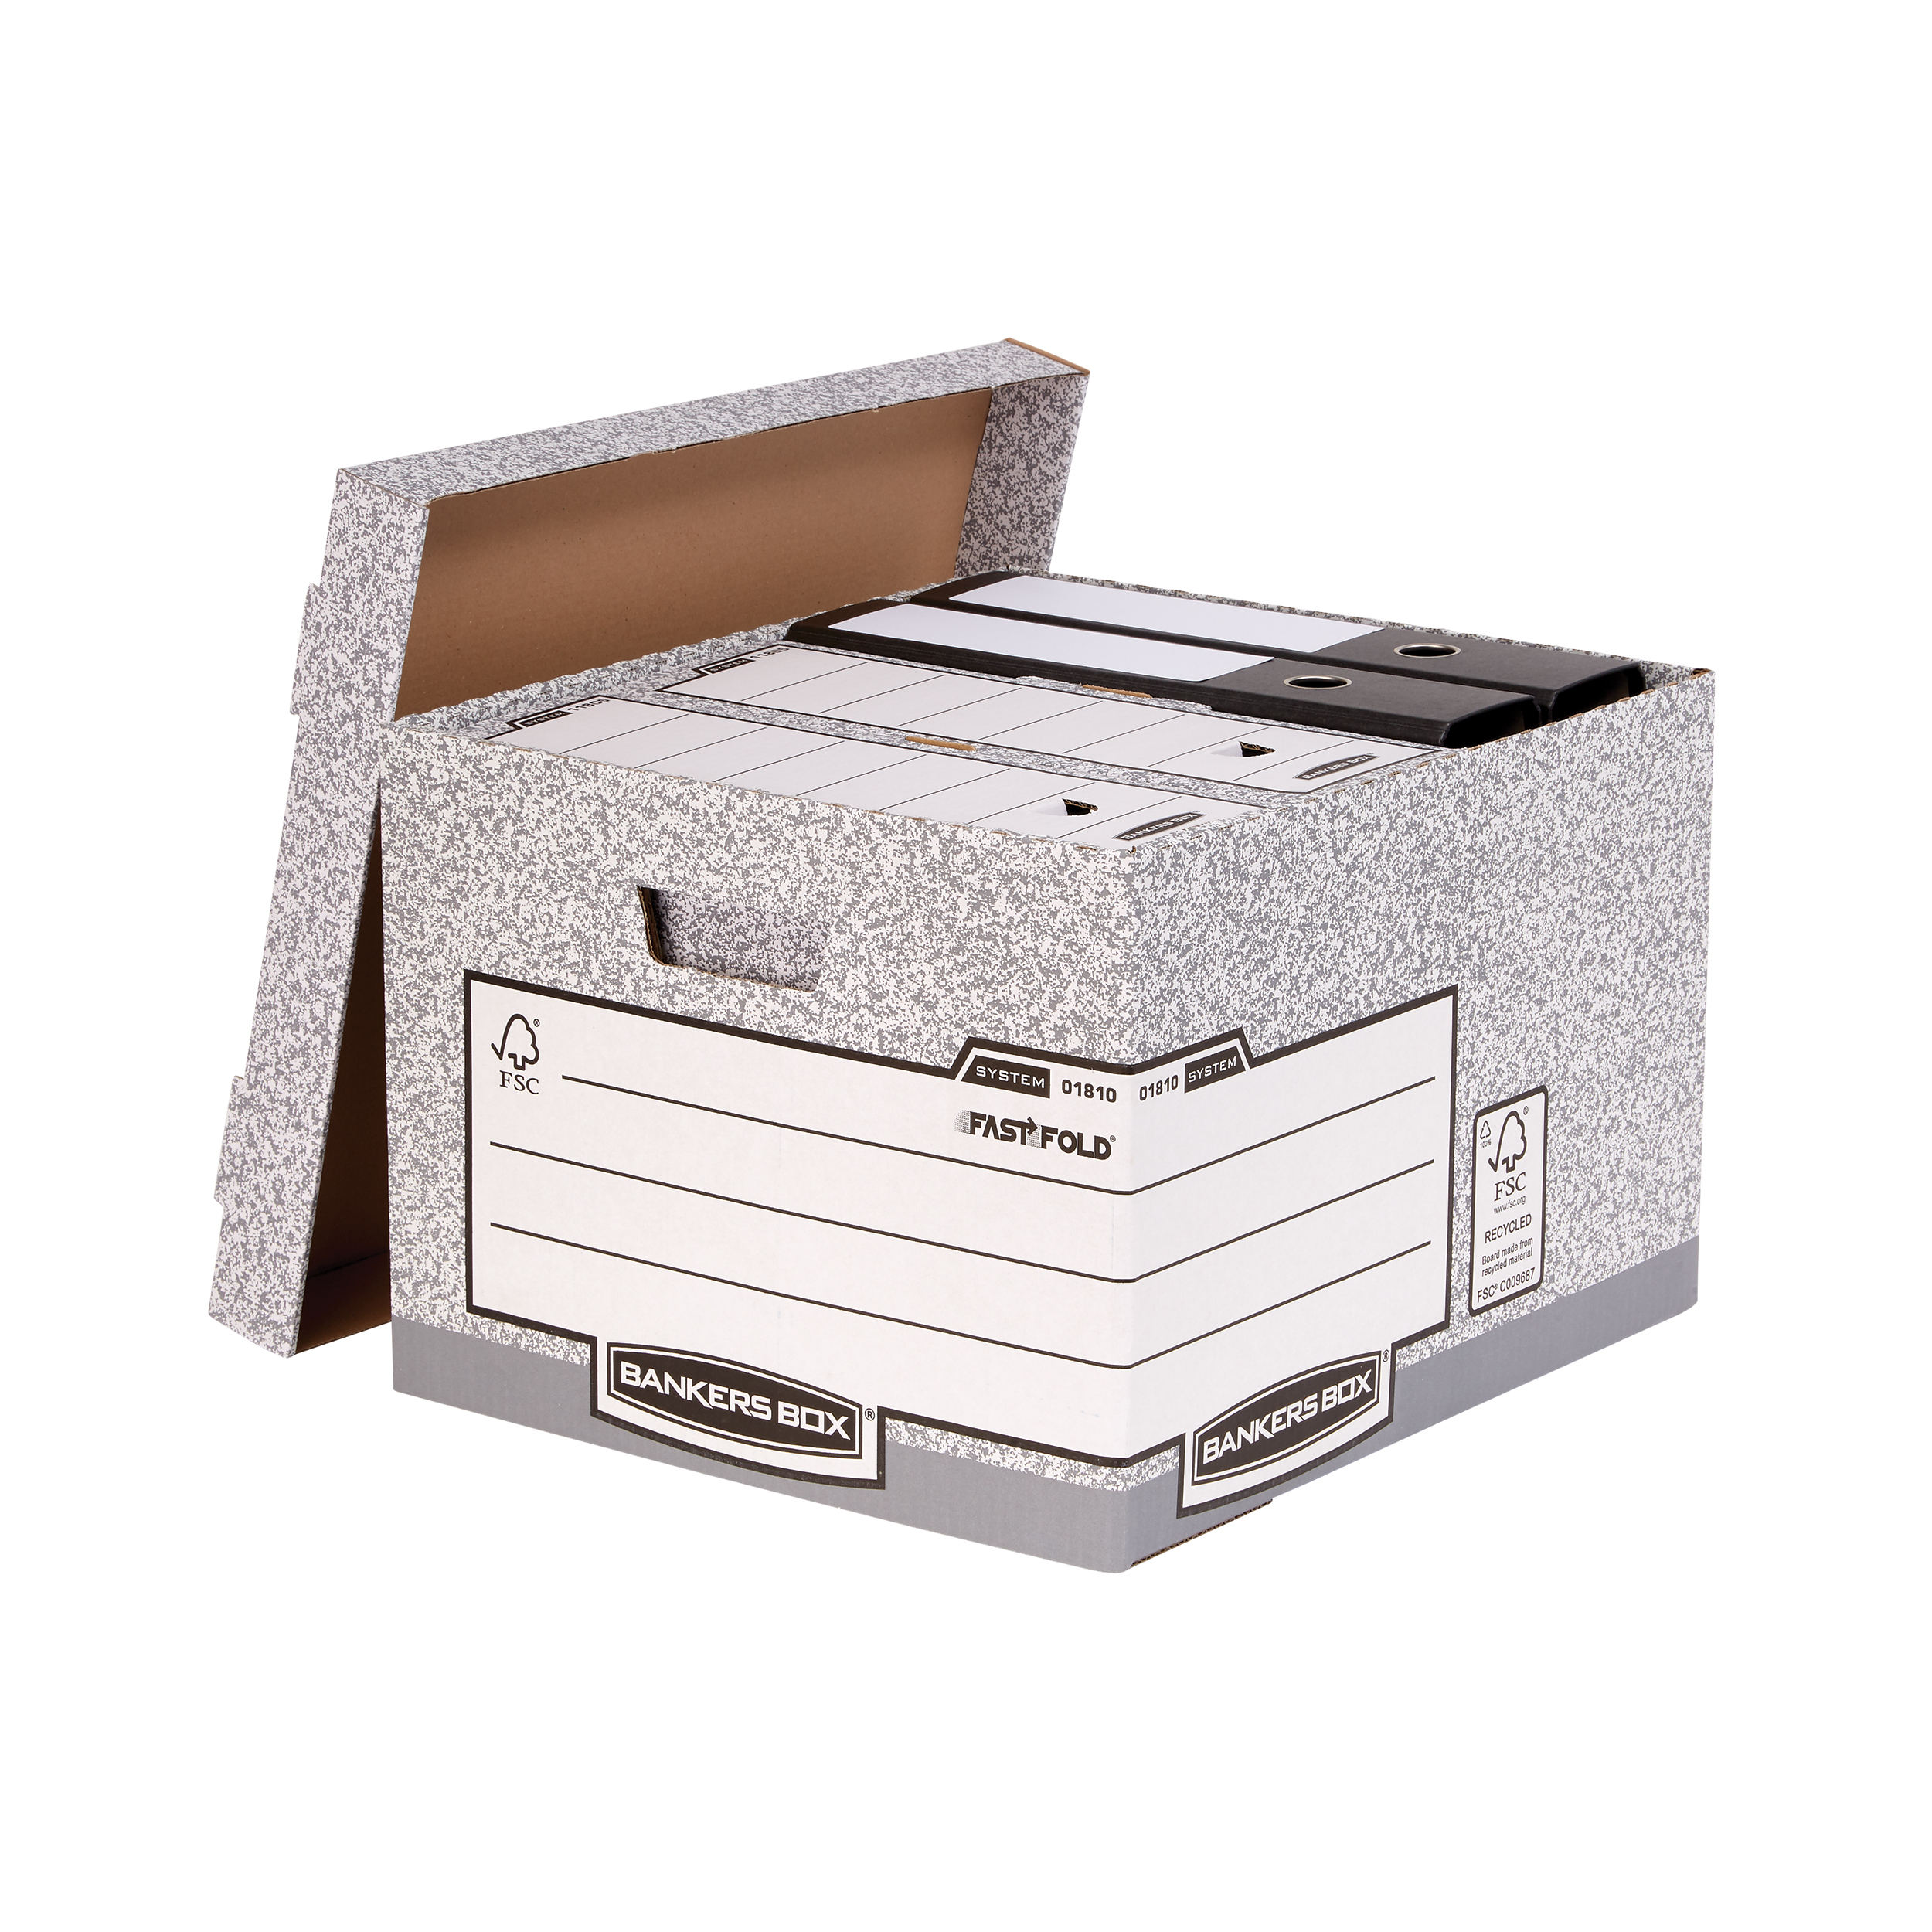 Storage Boxes Bankers Box by Fellowes System Large Storage Box FSC Ref 01810-FF Pack 10